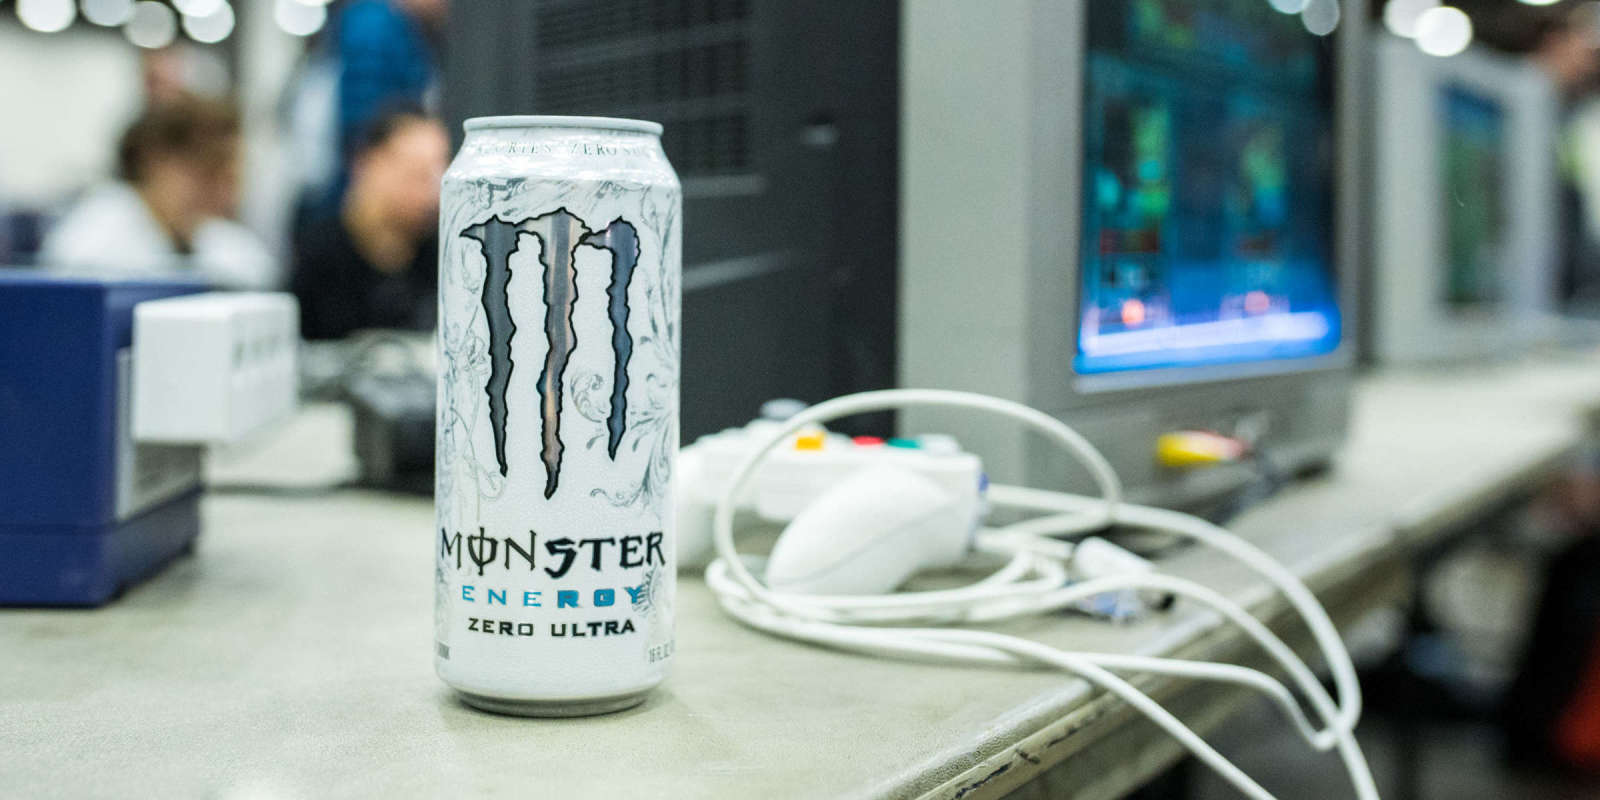 Photo of a Monster can next to a Gamecube gaming setup